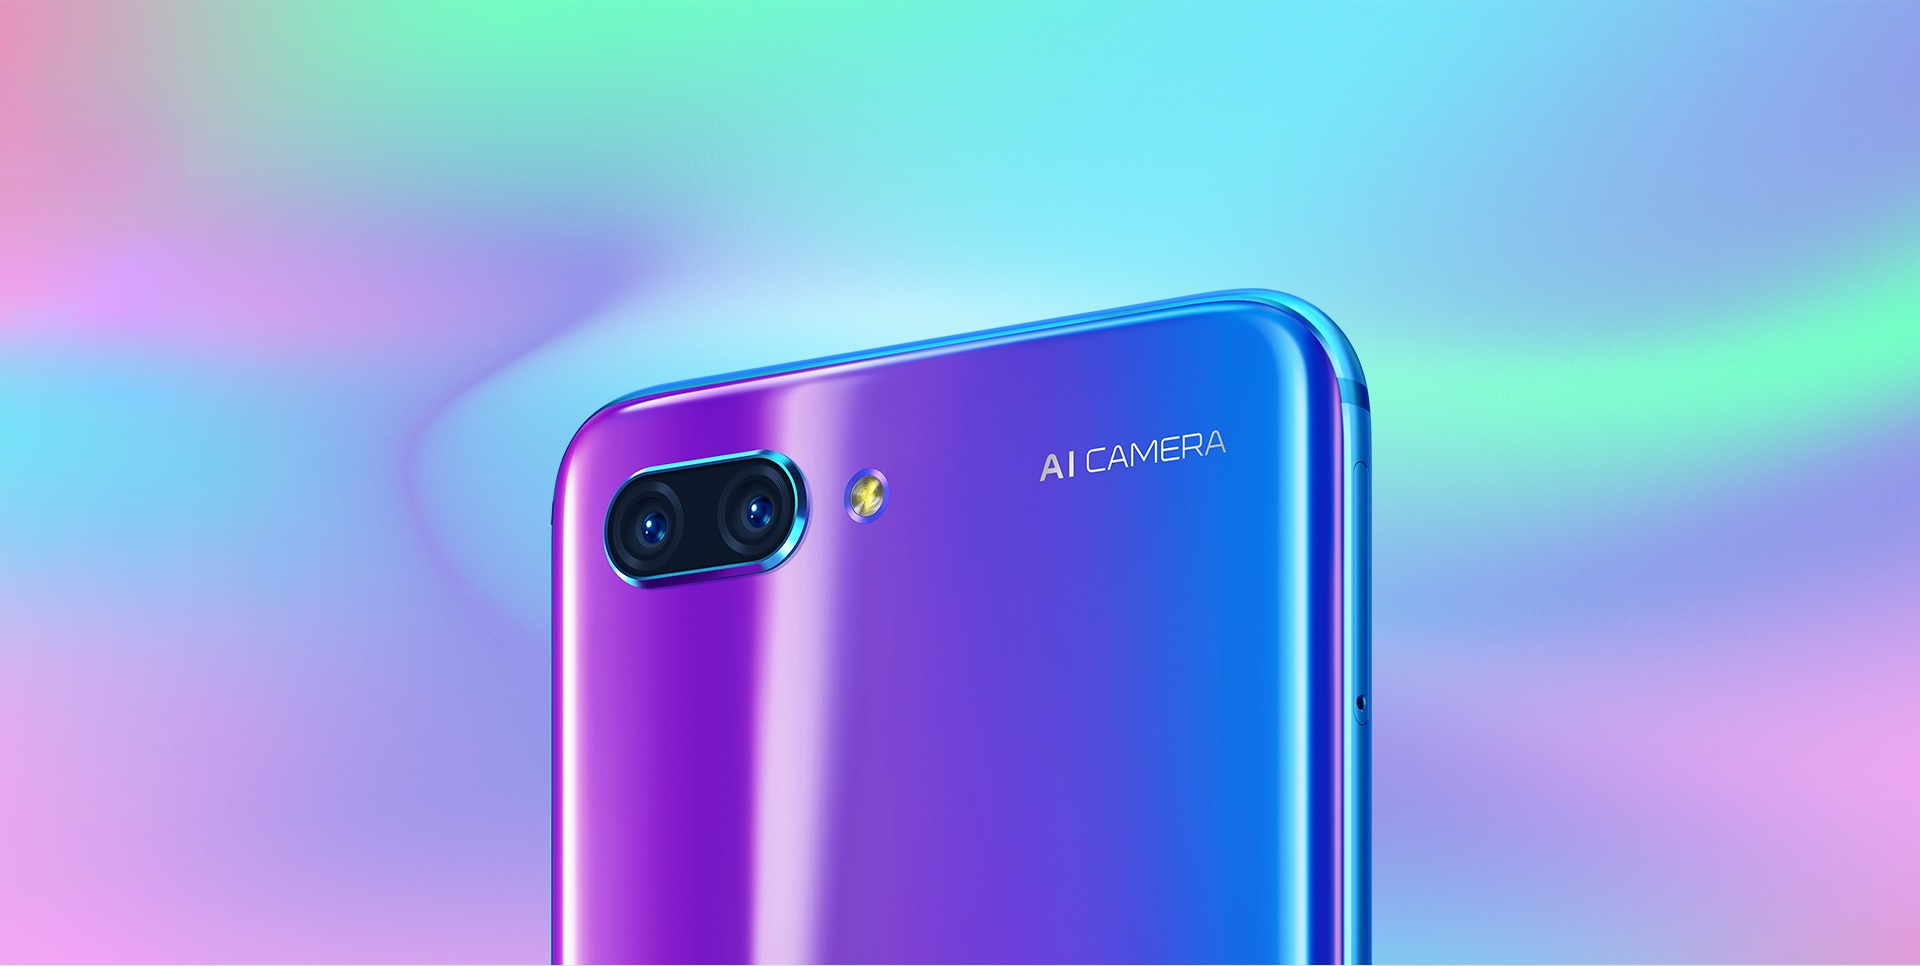 Honor 10 launched globally - Here's all you need to know 1